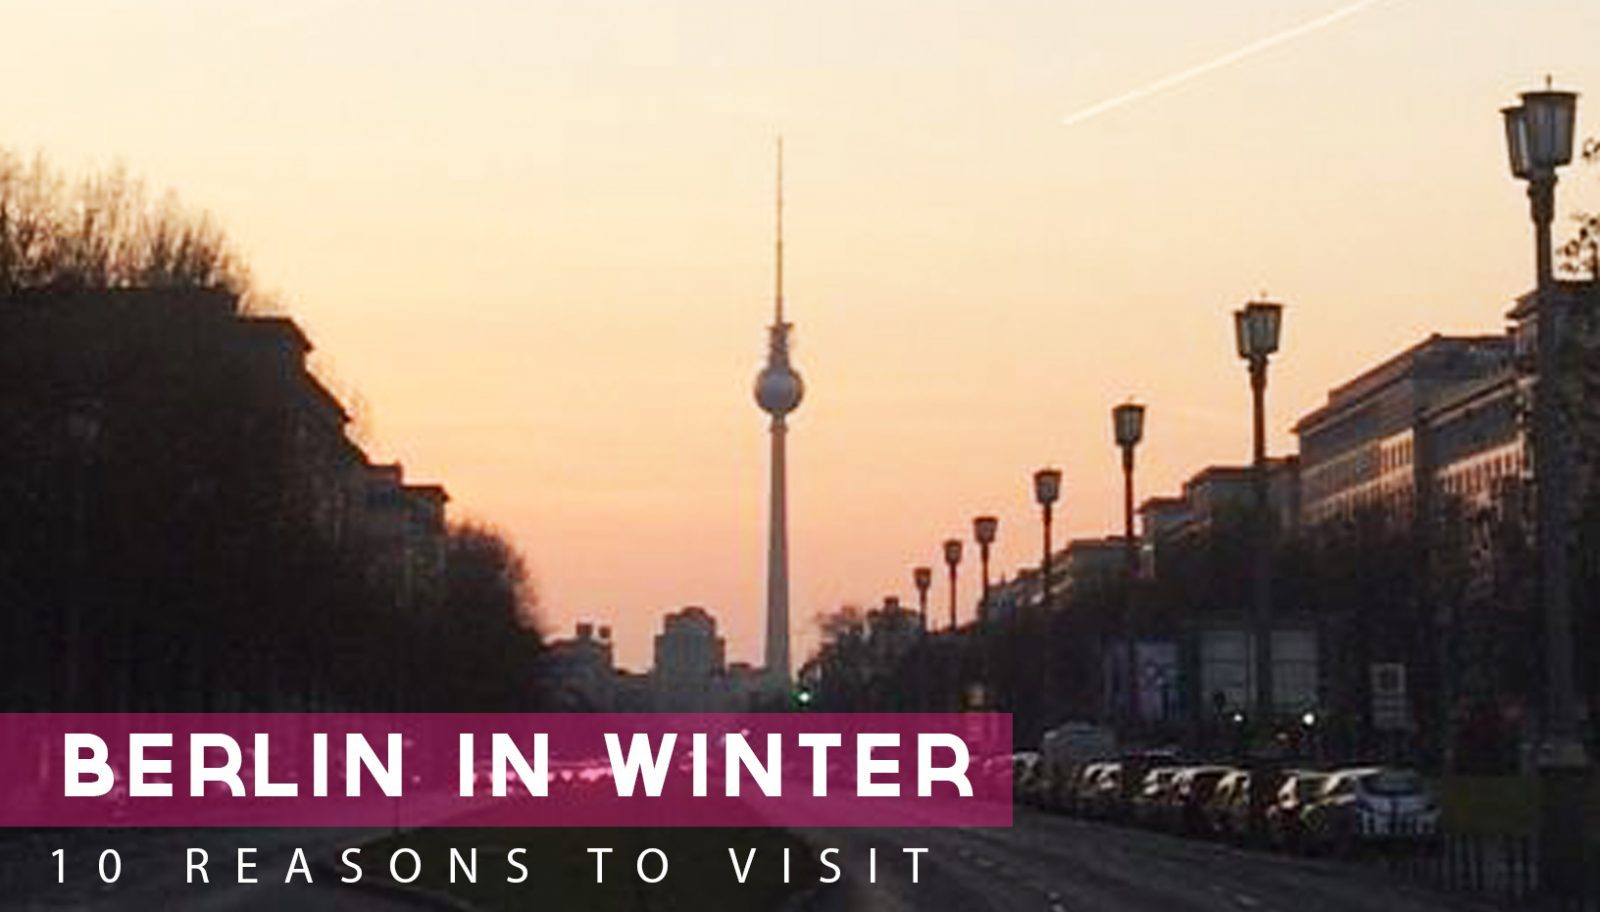 Berlin hot spots winter